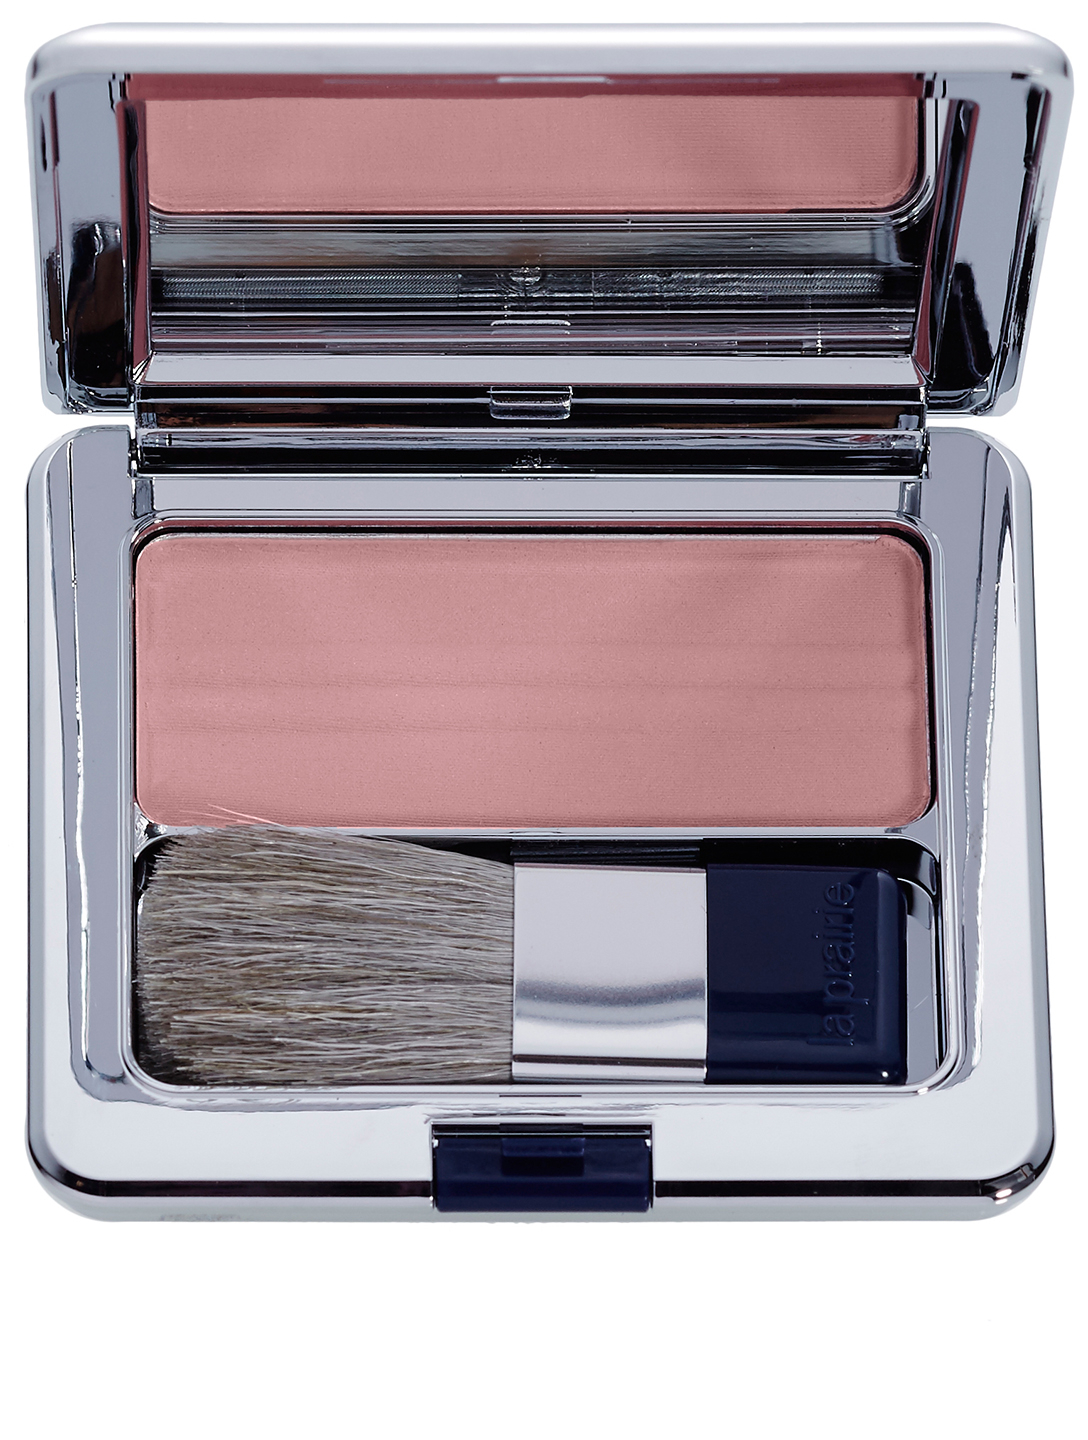 LA PRAIRIE Nourishing Cheek Colour Beauty Pink